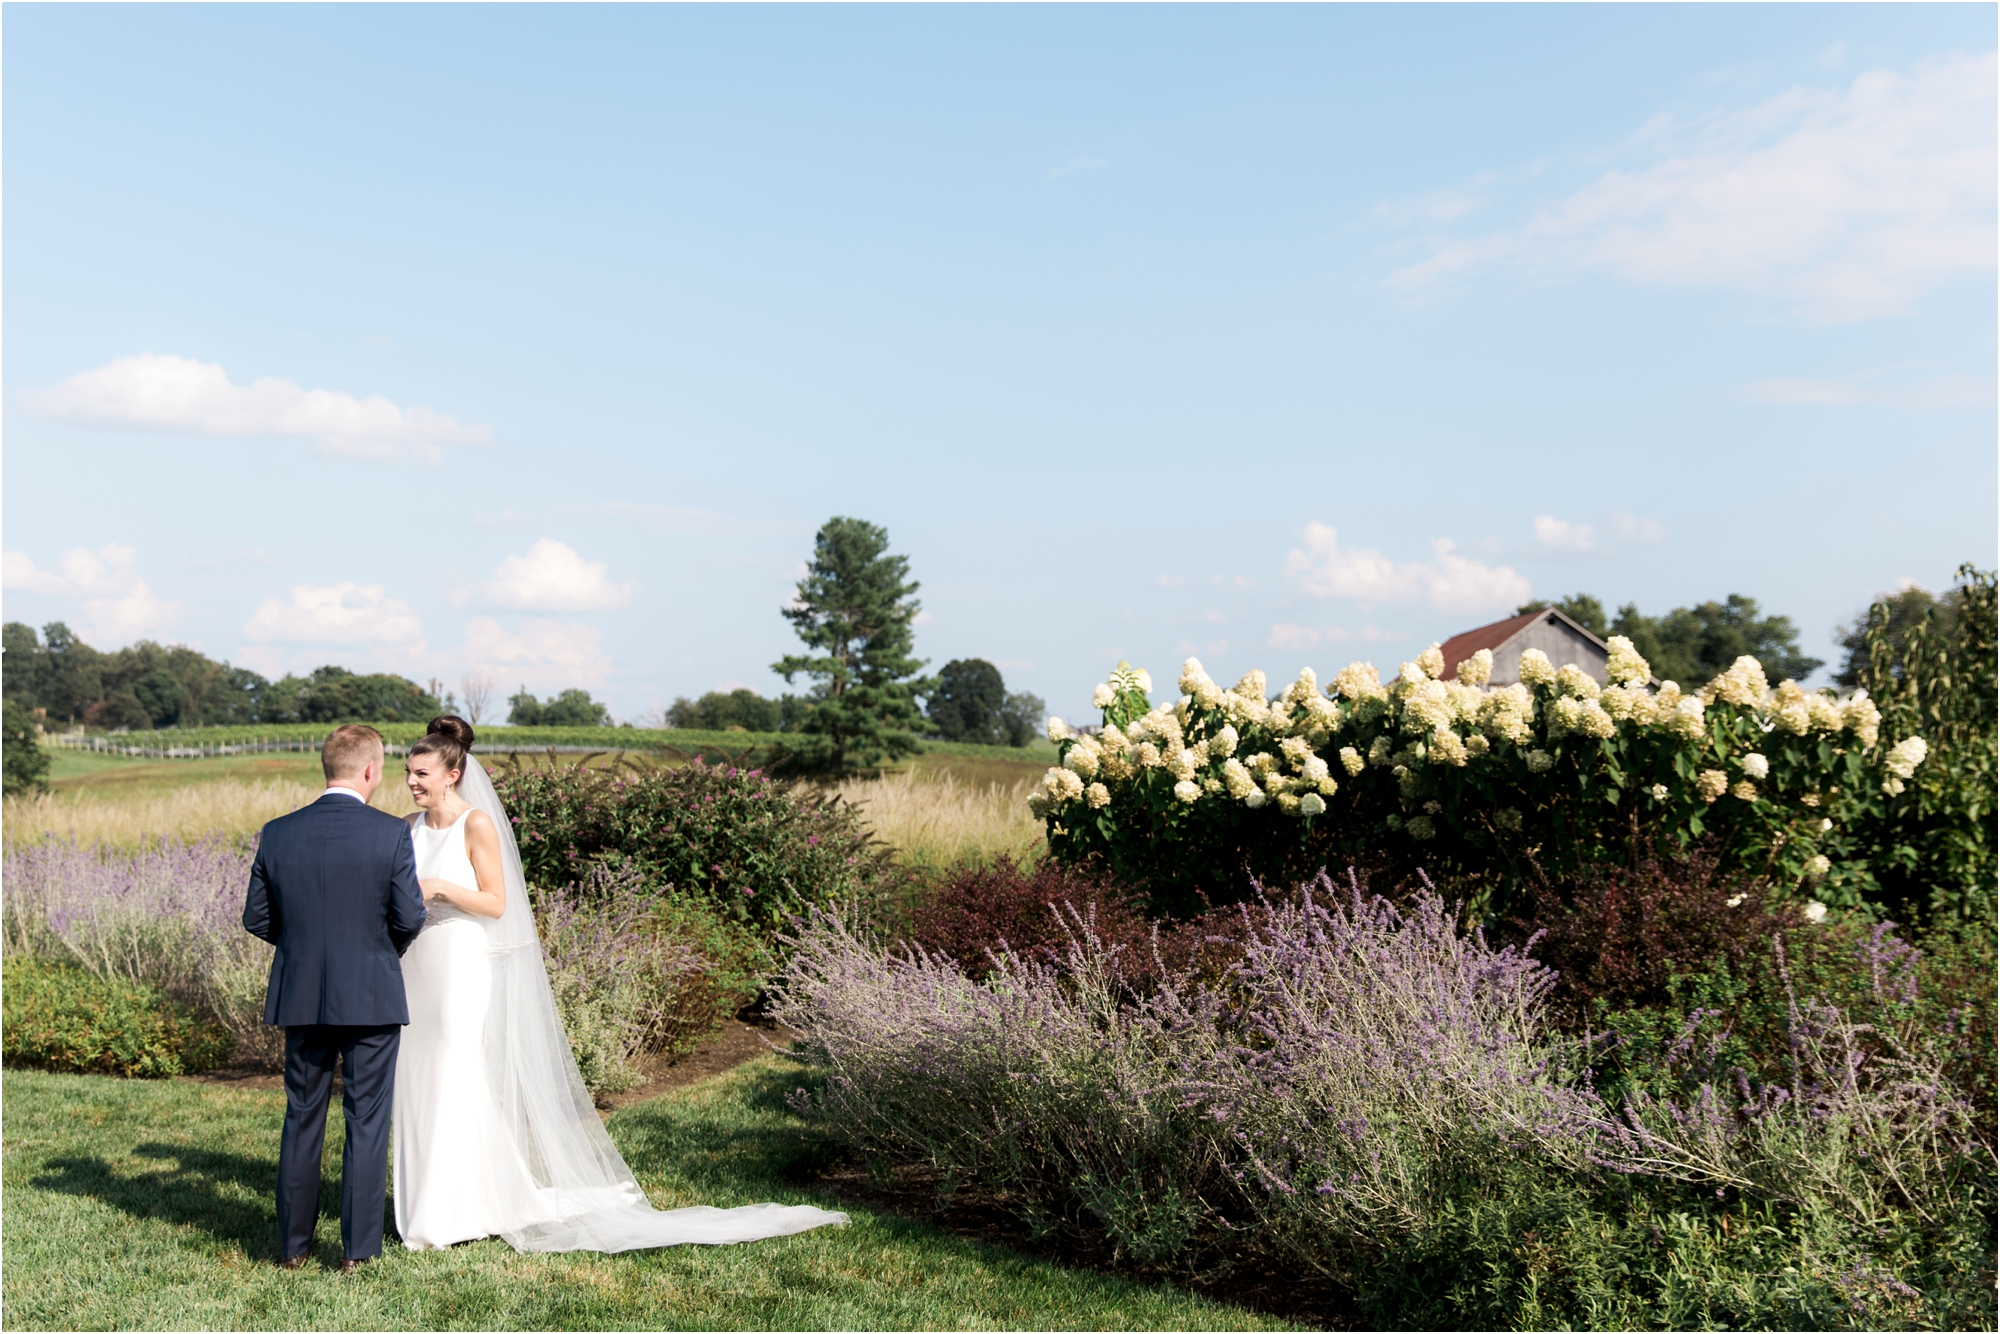 michelle-george-early-mountain-vineyard-charlottesville-virginia-wedding-photos_0015.jpg